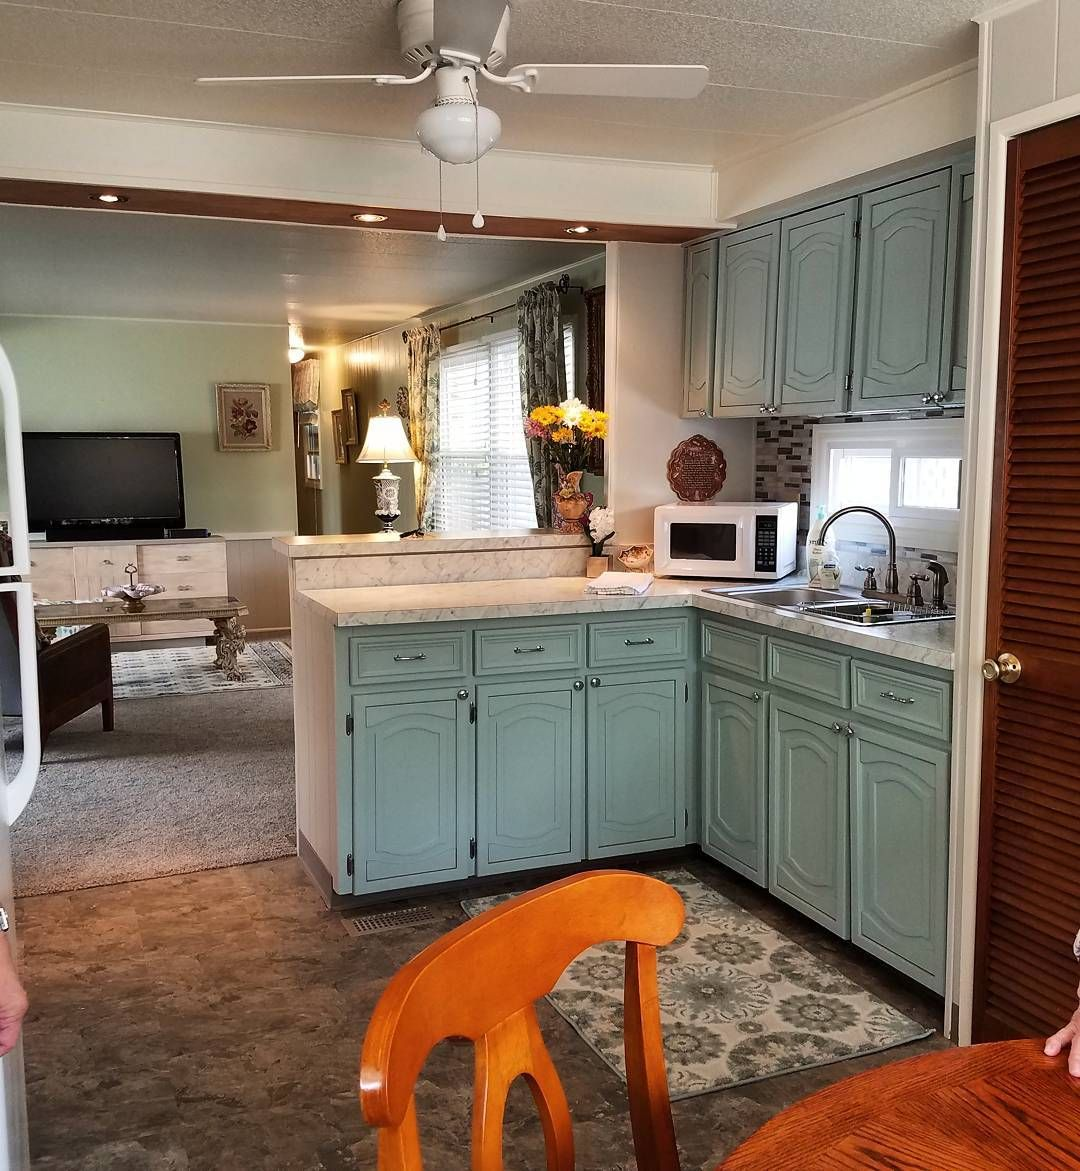 How To Repair And Paint Mobile Home Cabinets The Right Way ...